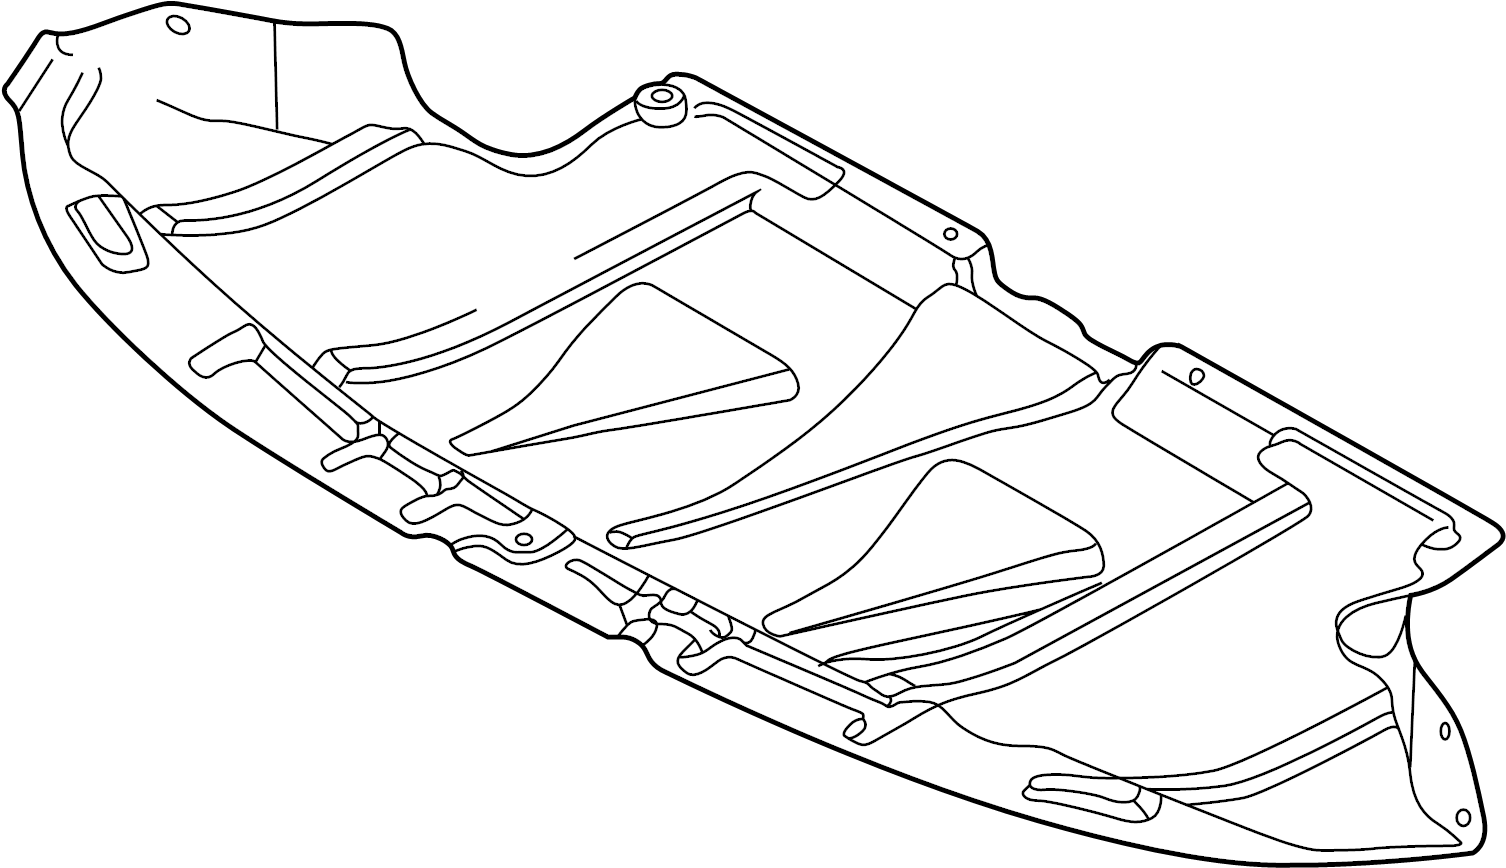 Showassembly additionally 8e0863821al besides piston connecting rod bearings diagram moreover 860544 glow plug wire harness additionally